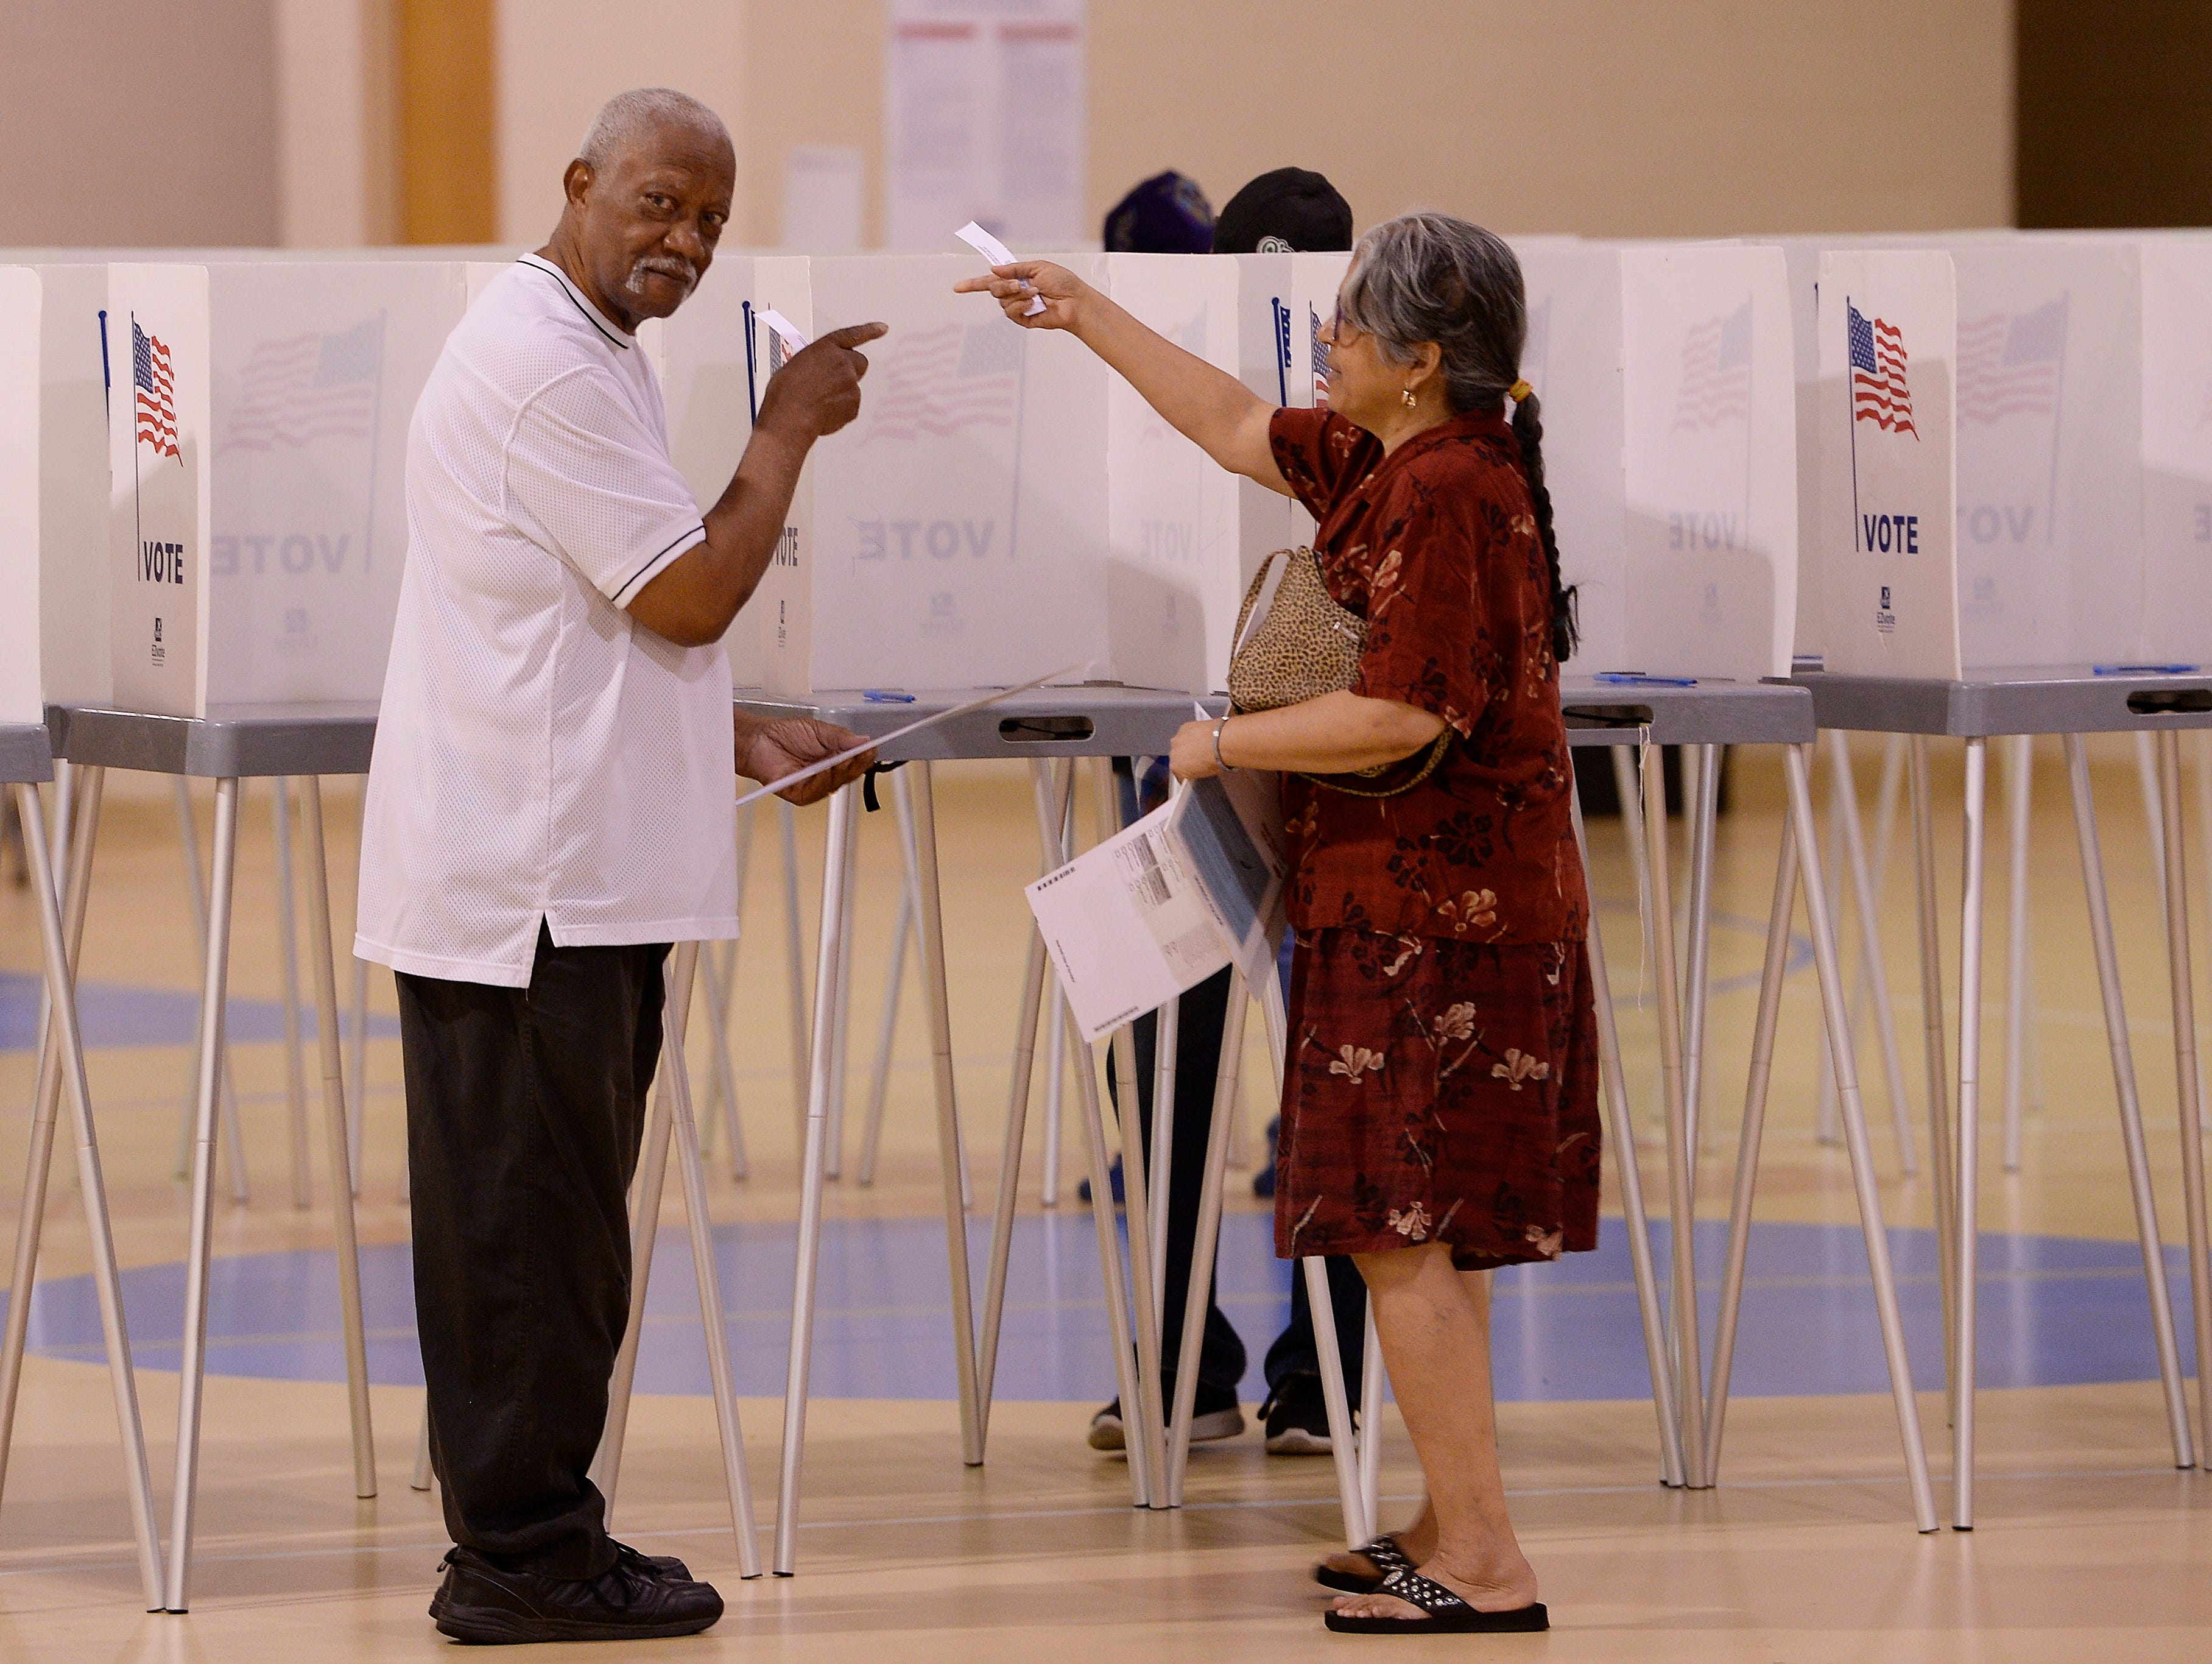 Melvin Taylor, 83, and his wife Marcia Taylor of Pontiac talk after casting their votes Tuesday morning at New Bethel Missionary church in Pontiac.